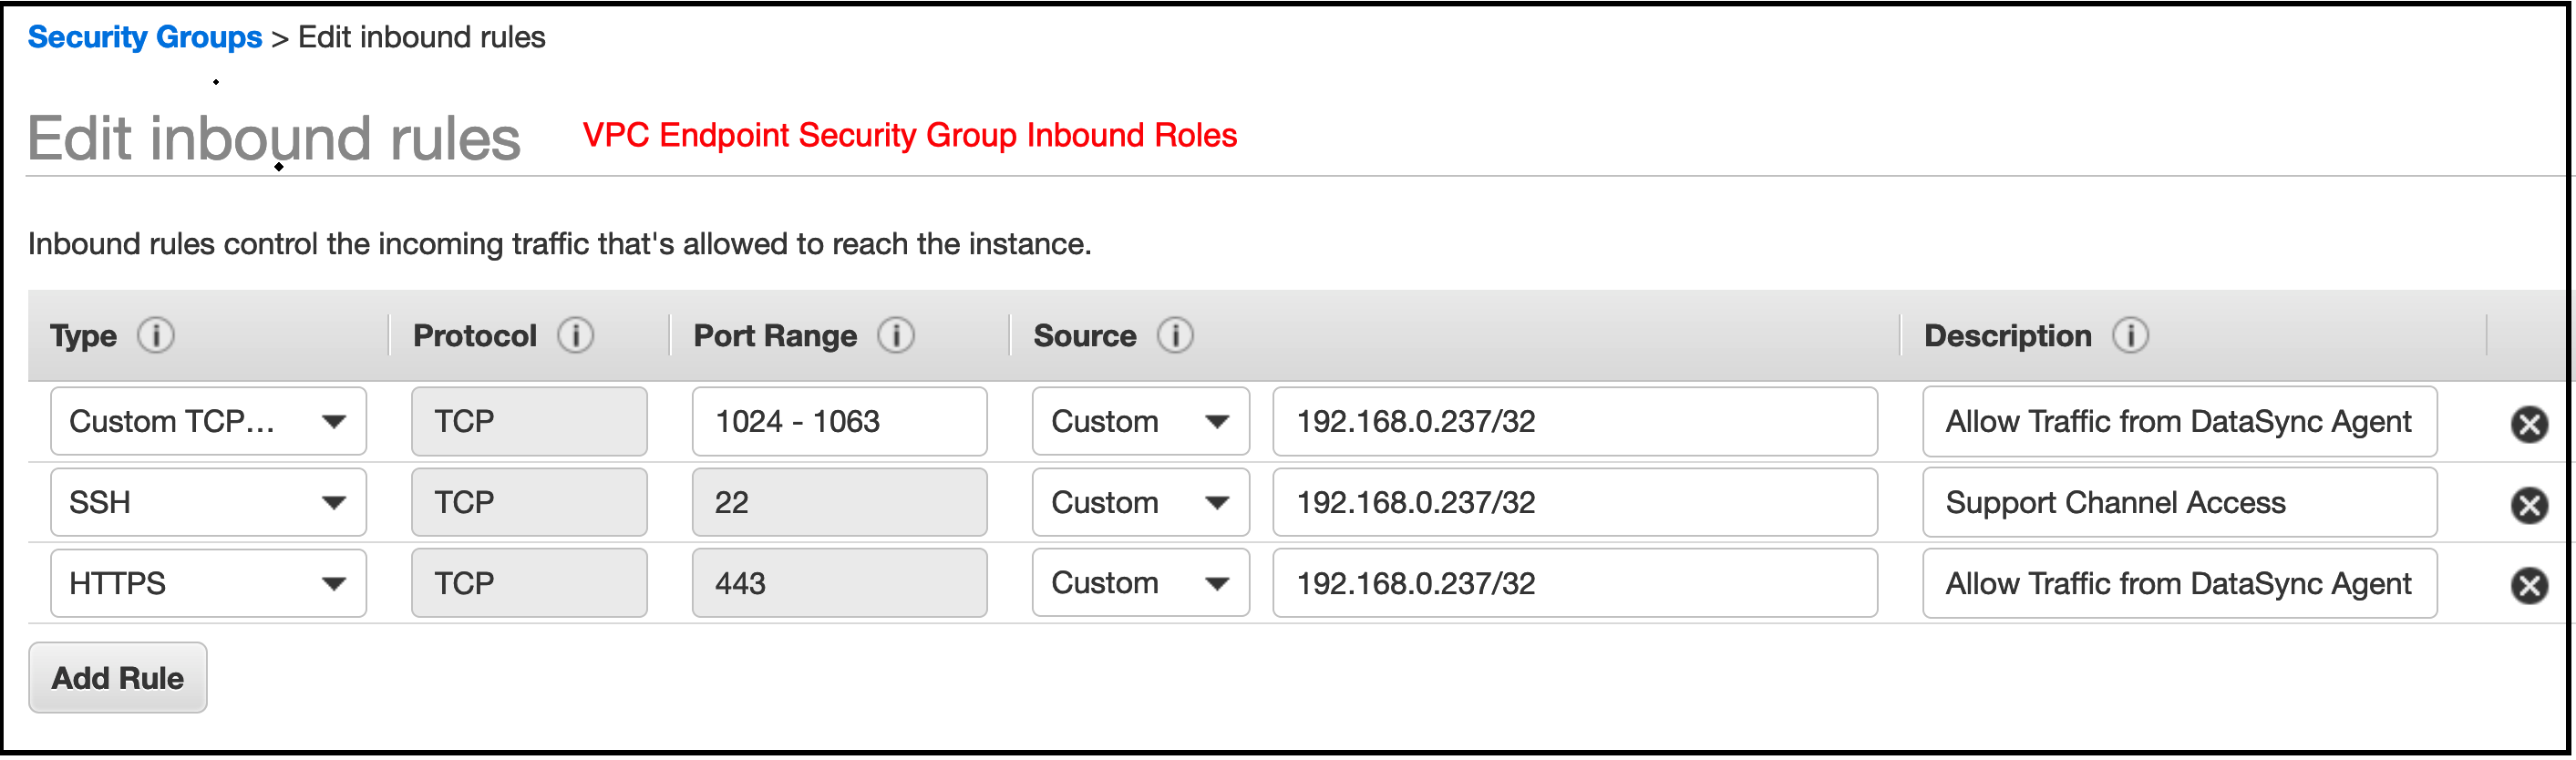 Configure inbound rules allowing the agent's private IP in the source Region (192.168.0.237 in the screenshot) to connect to the IPs DataSync uses.